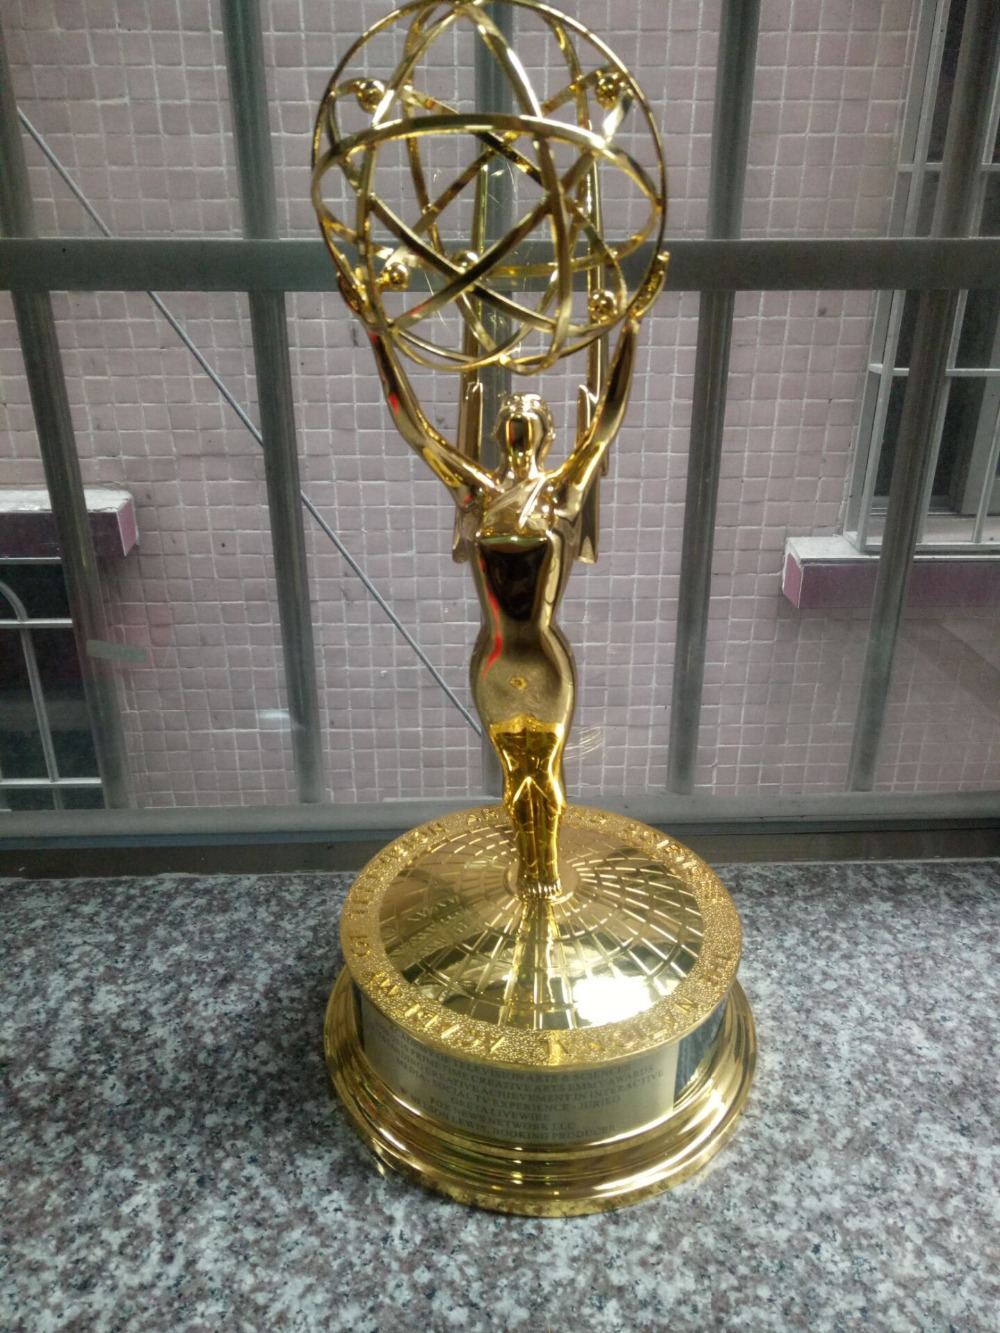 Zinc Alloy Emmy Trophy1:1 replica 39cm Hight Emmy Award Trophy Replica TV Trophy Zinc Alloy Souvenirs Collectibles Nice Gift